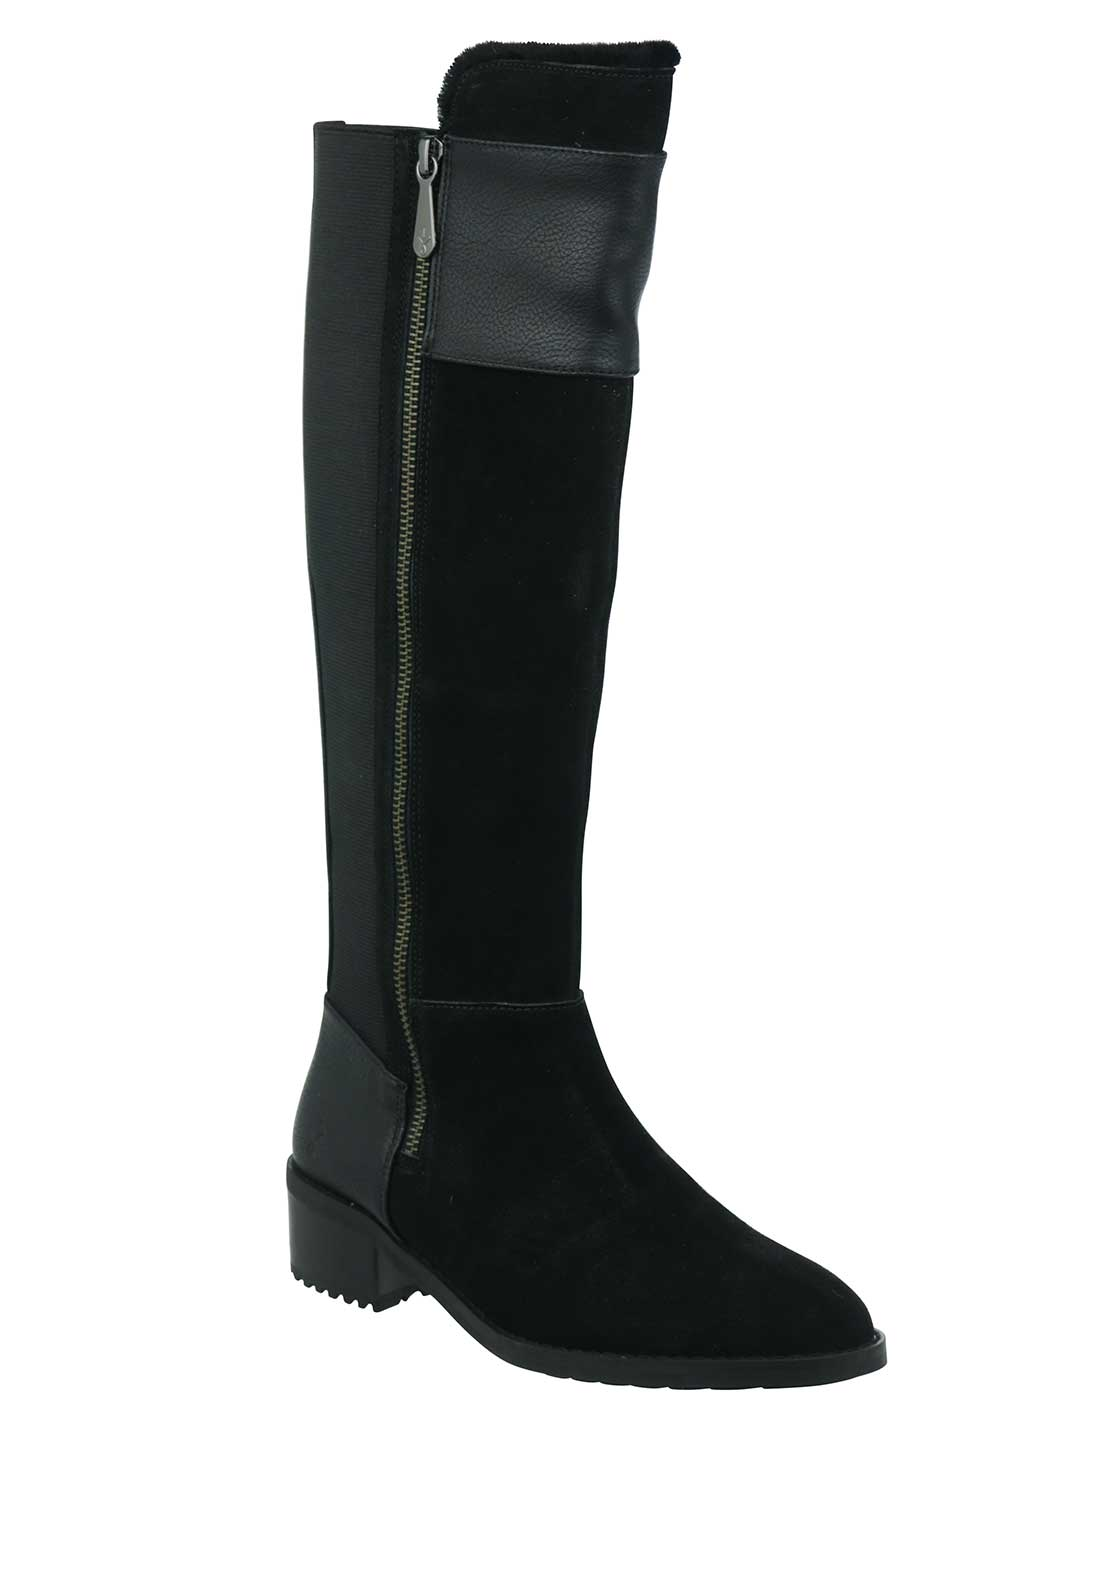 EMU Australia Tennant Long Leather Boots, Black